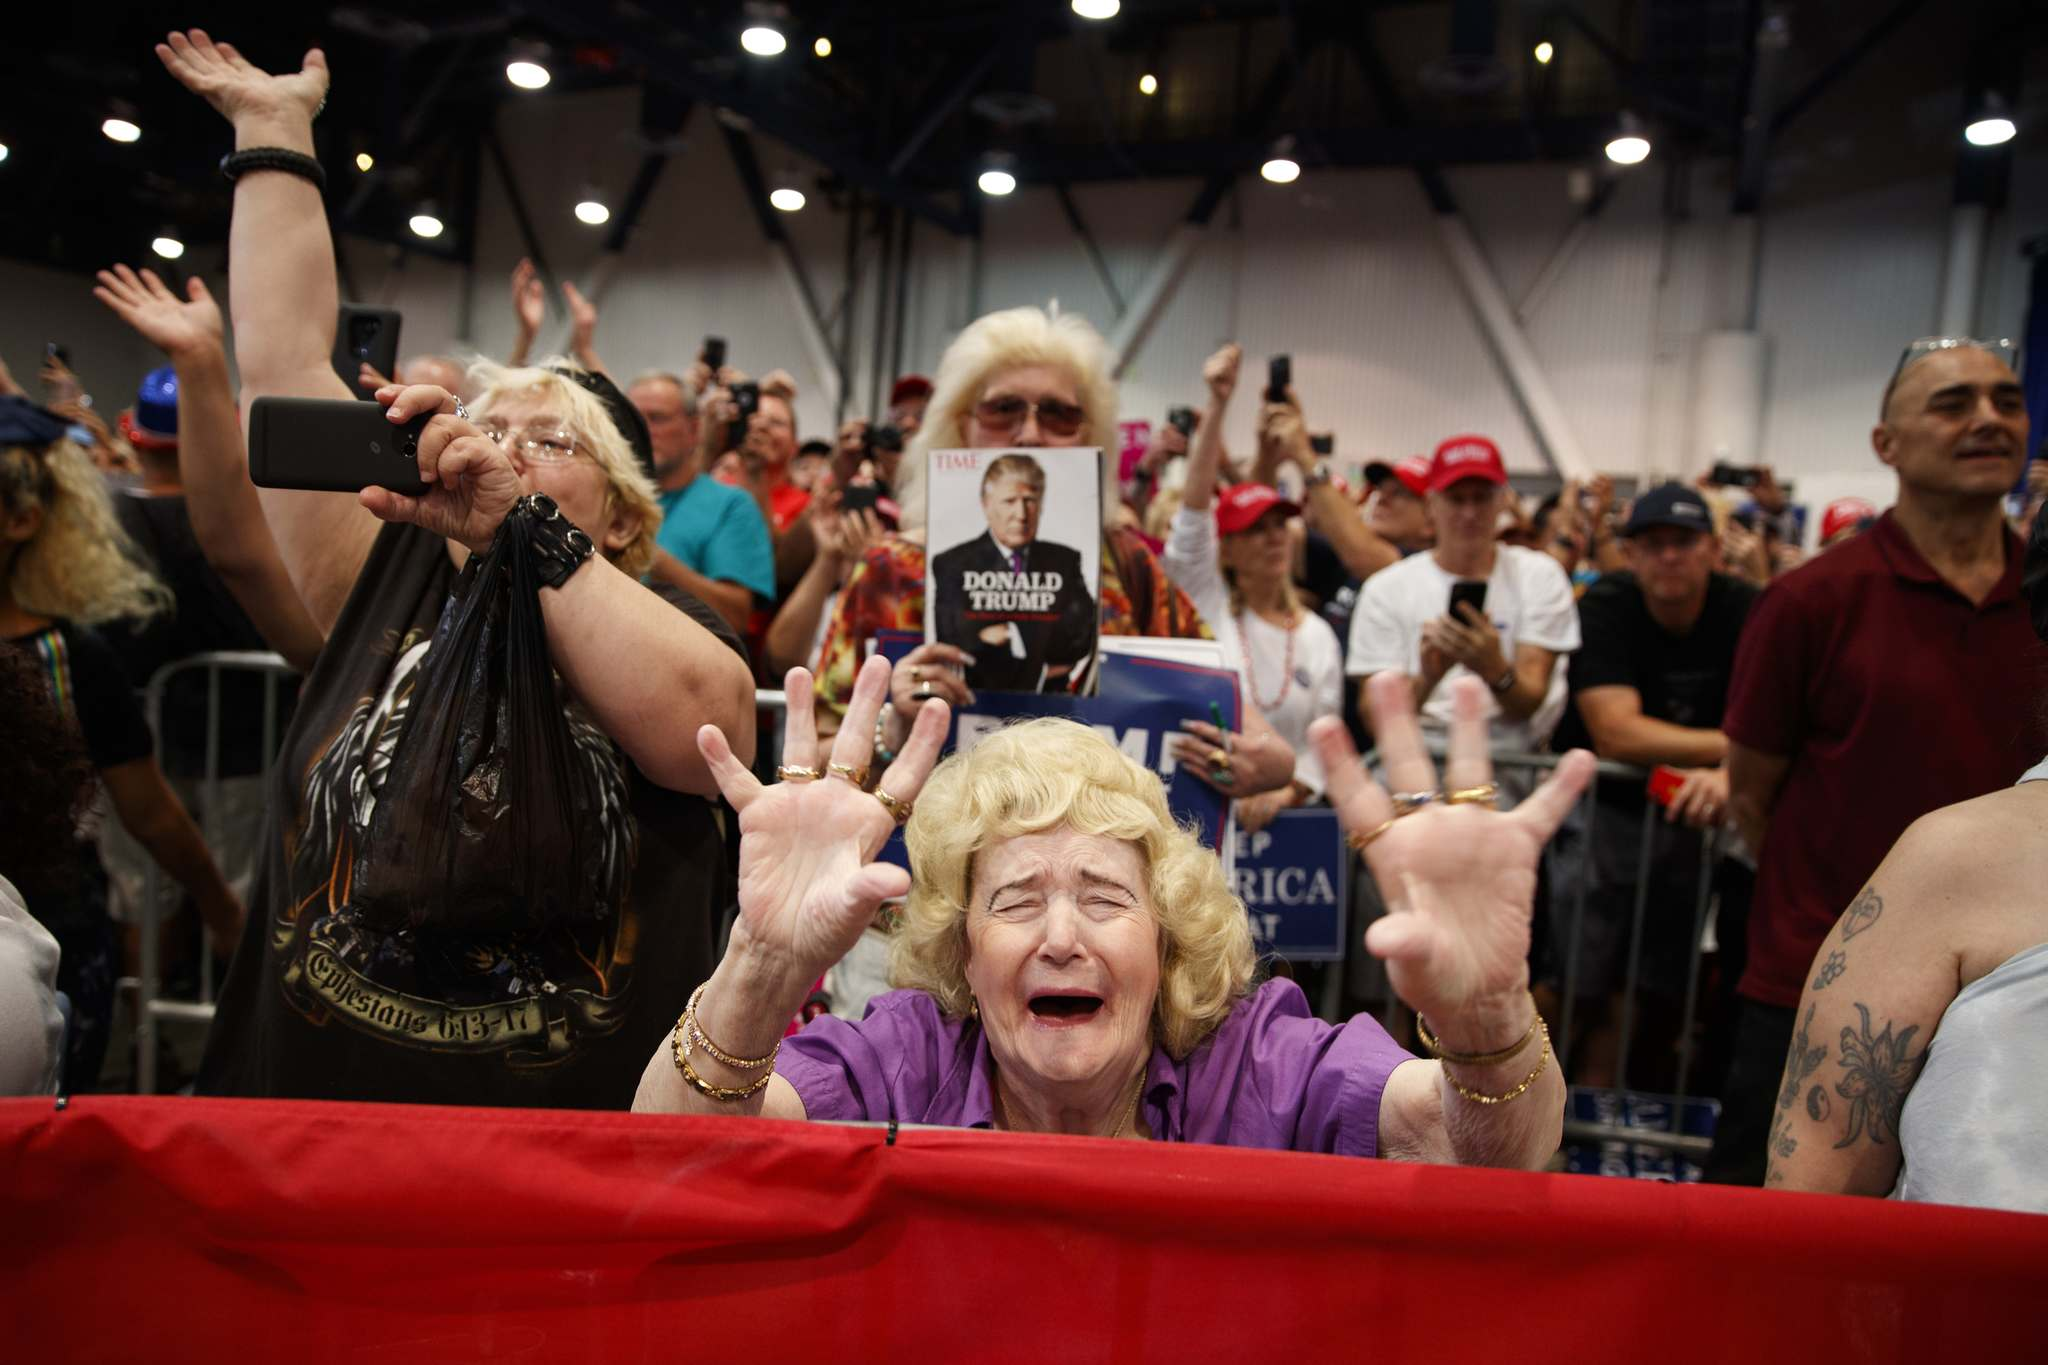 With the current president, politicians have been given a case study in how to muster unwavering support, as evident by Trump rallies across the U.S. (Evan Vucci / Associated Press files)